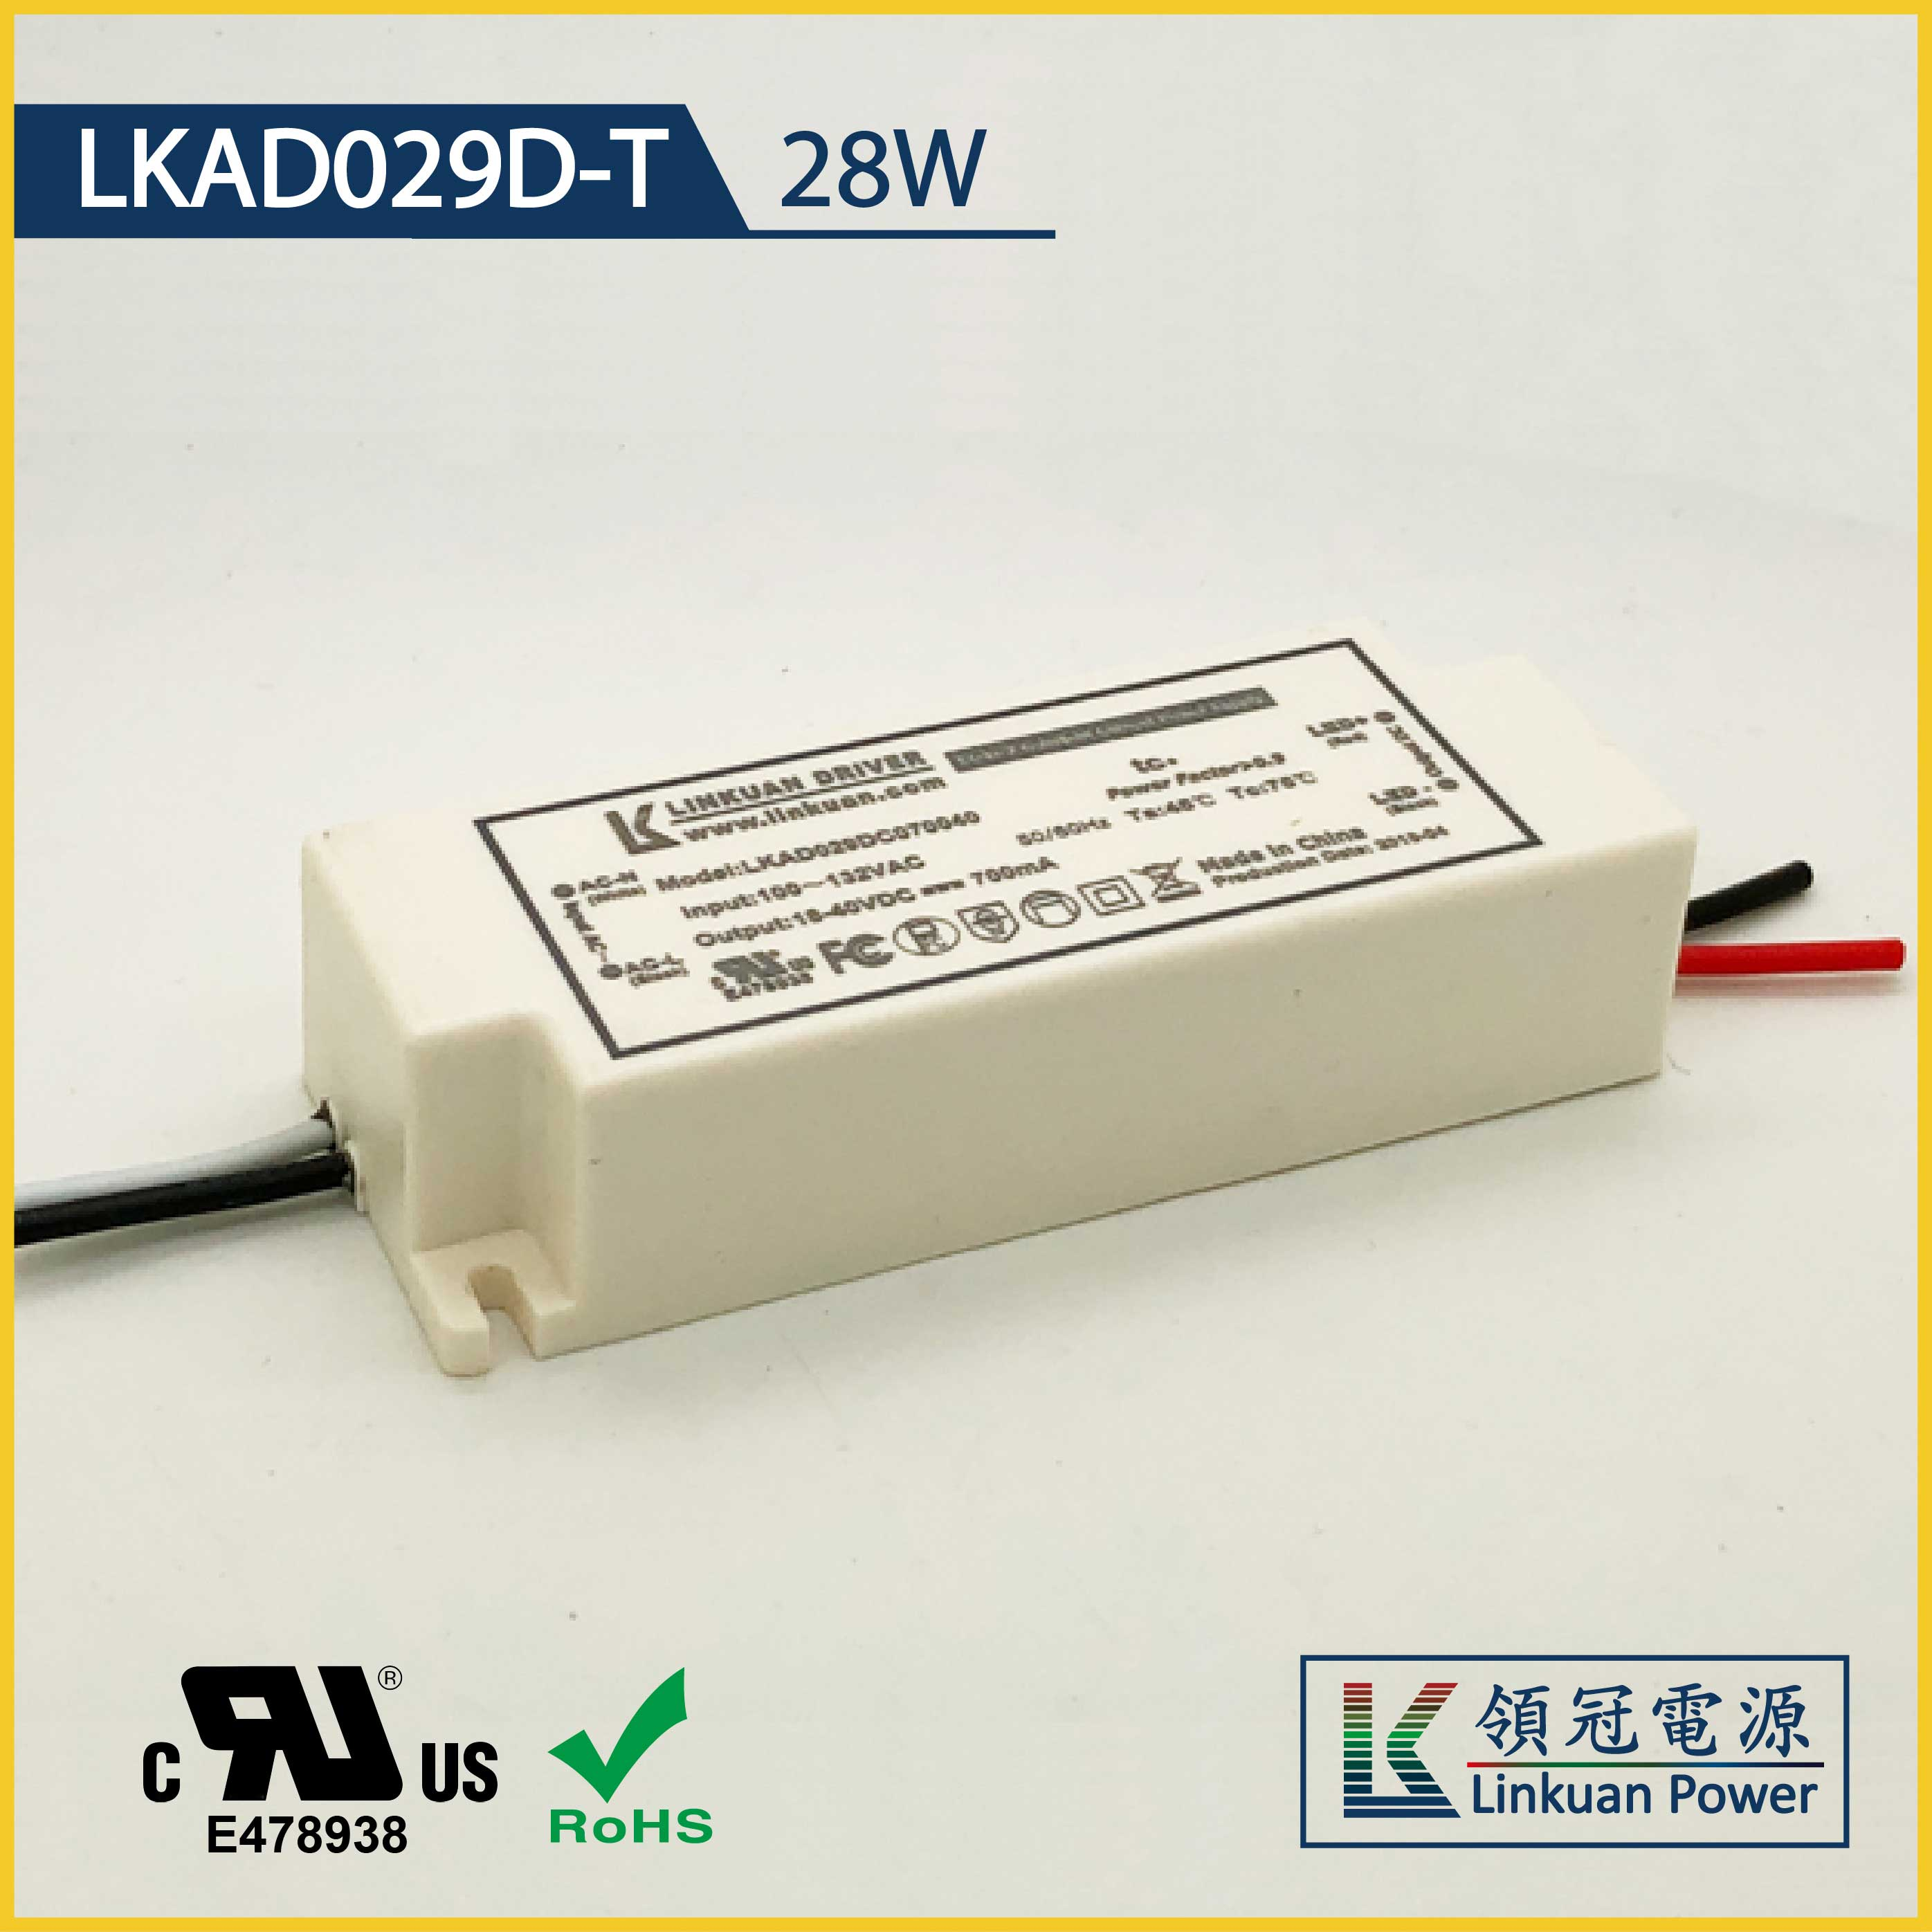 LKAD029D-T 28W 20-42V 700mA Dimmable LED drivers